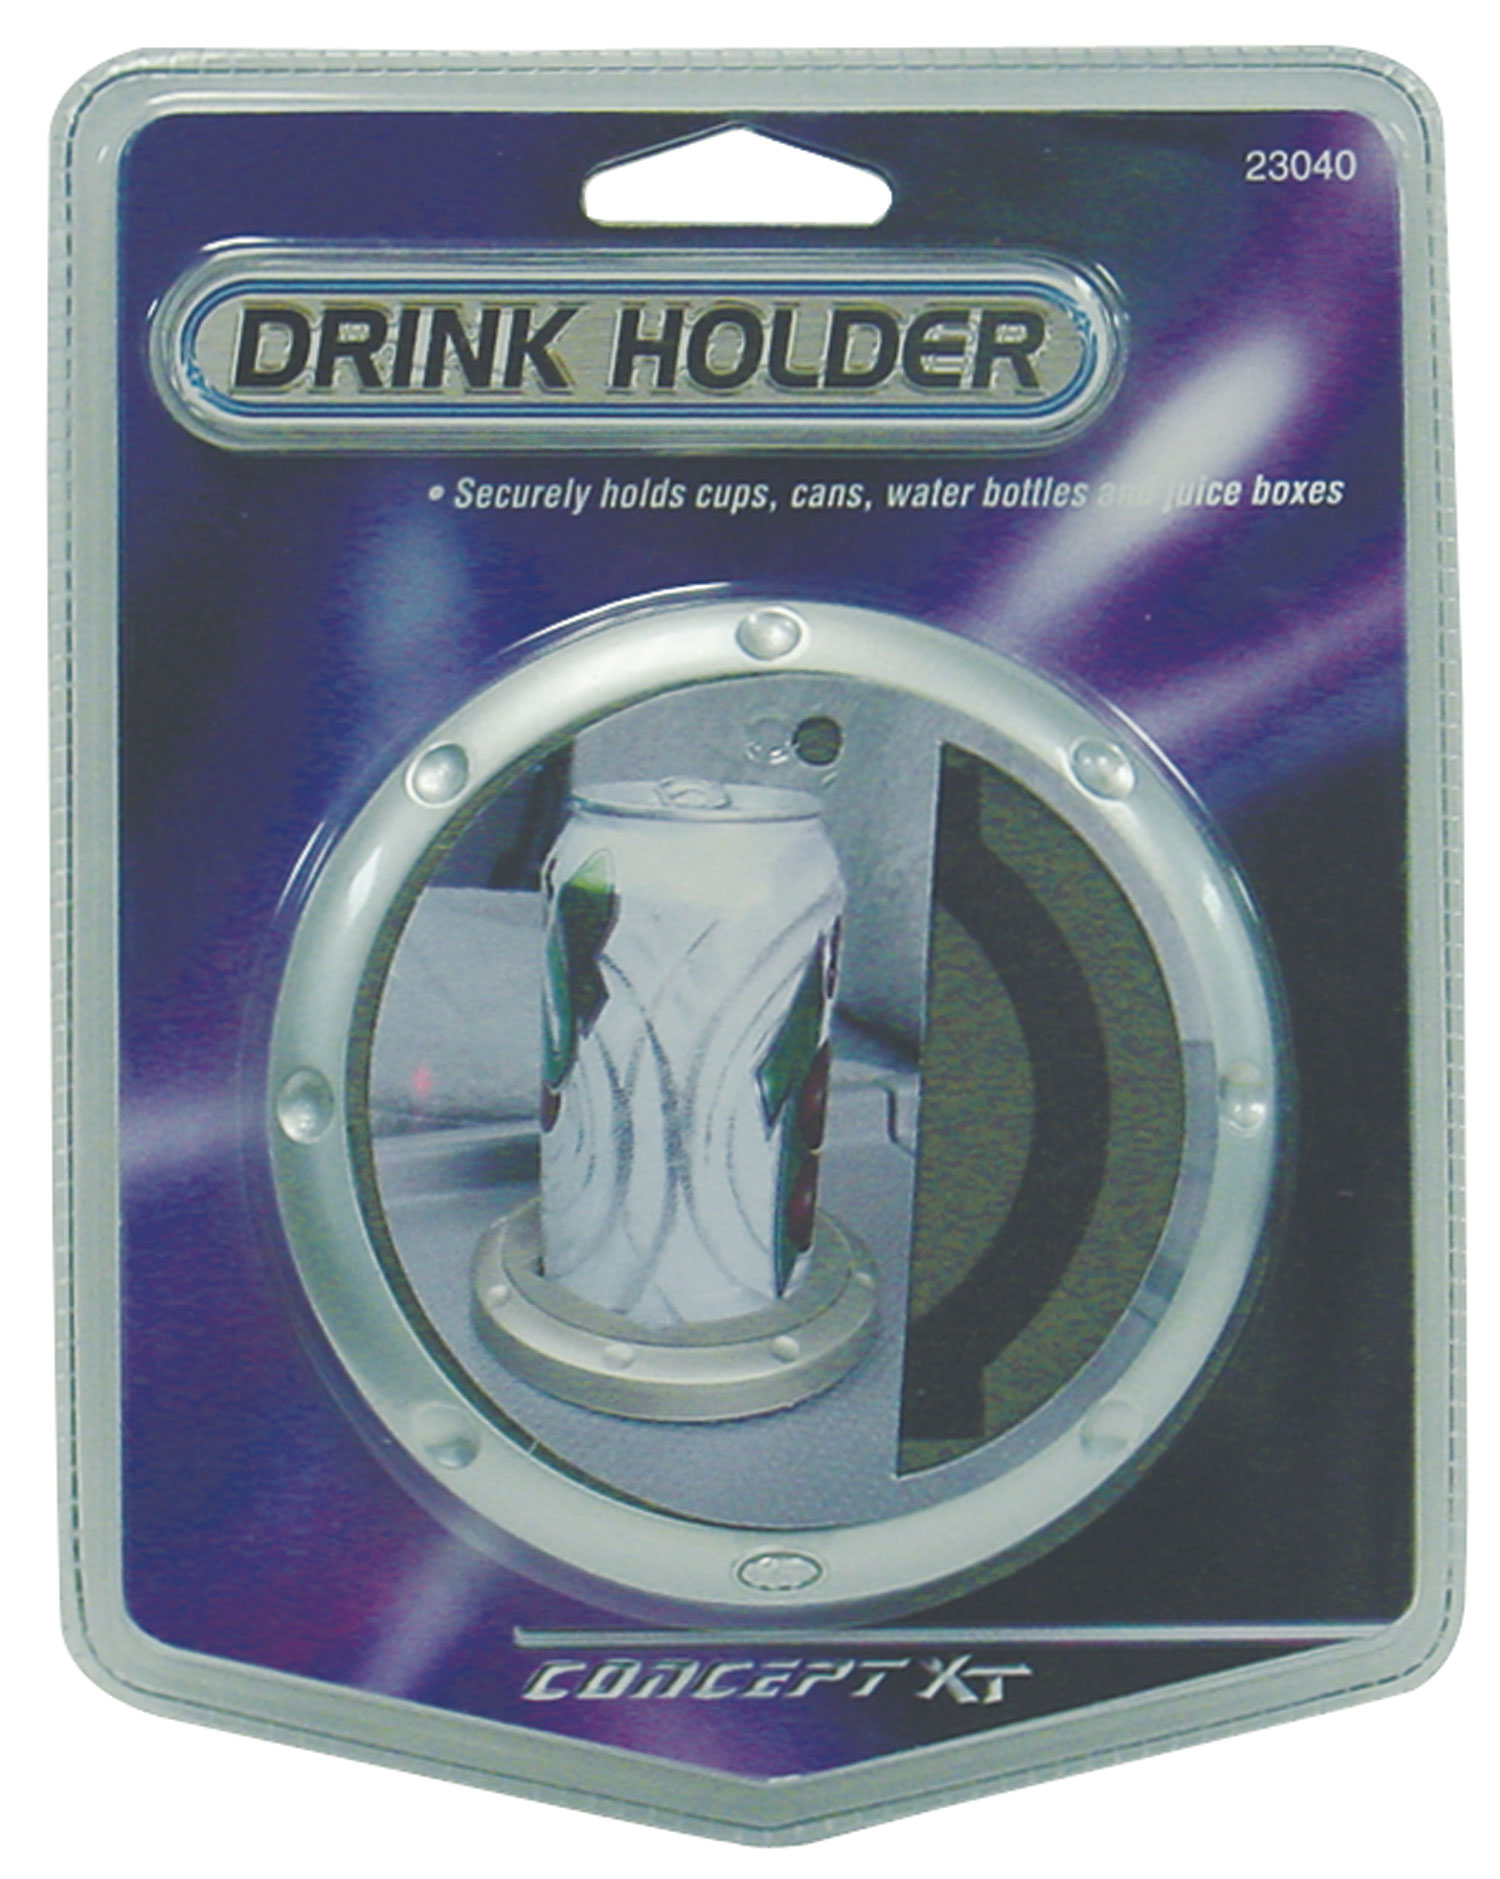 CONCEPT XT - STICK ON DRINK HOLDER SECURELY HOLDS CUPS, CANS, BOTTLES & JUICE BOXES, ATTACHES TO ANY FLAT SURFACE